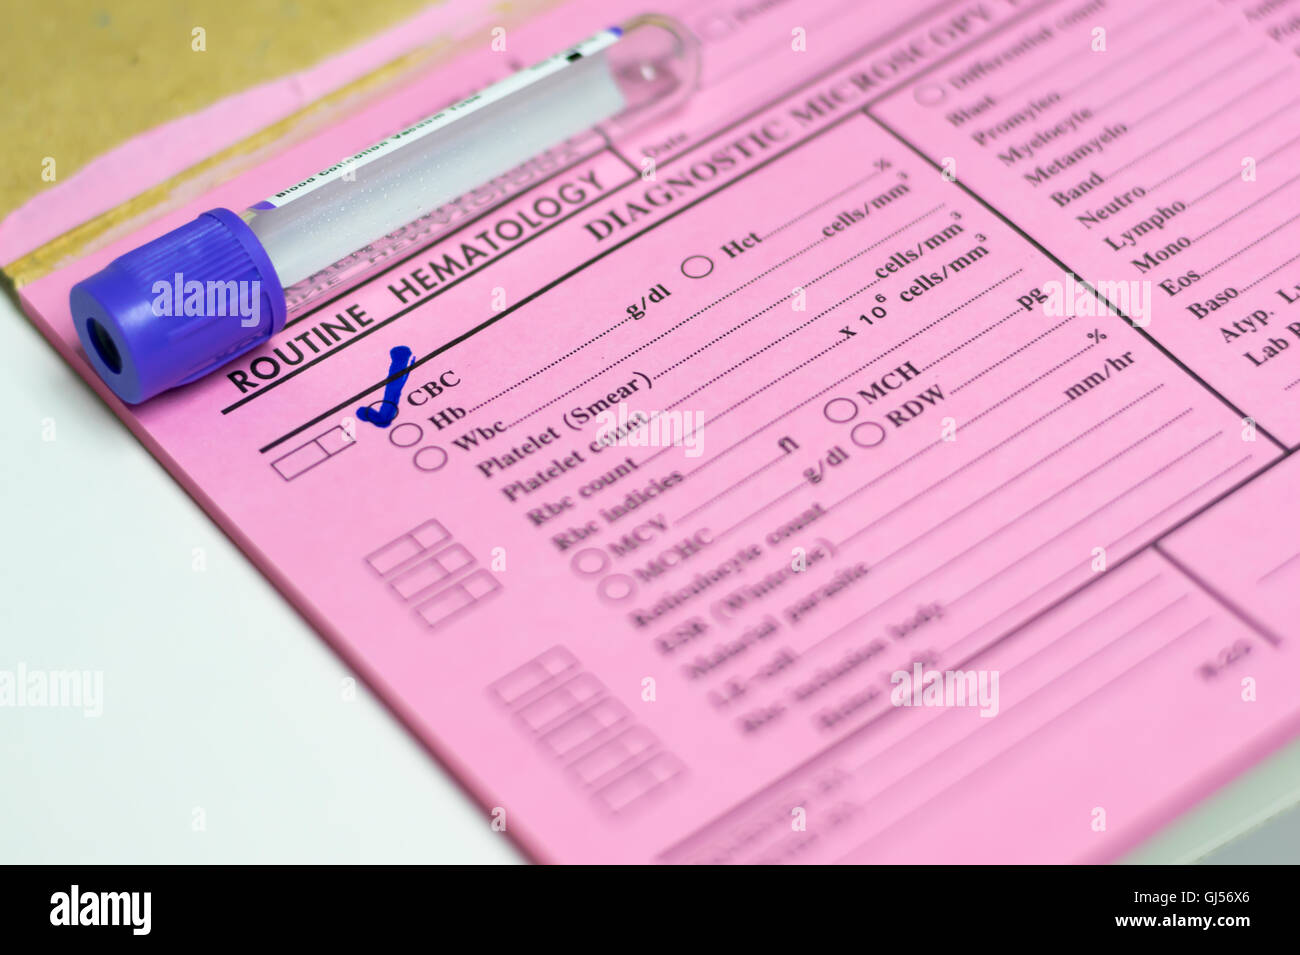 Test tube on request form in laboratory - Stock Image